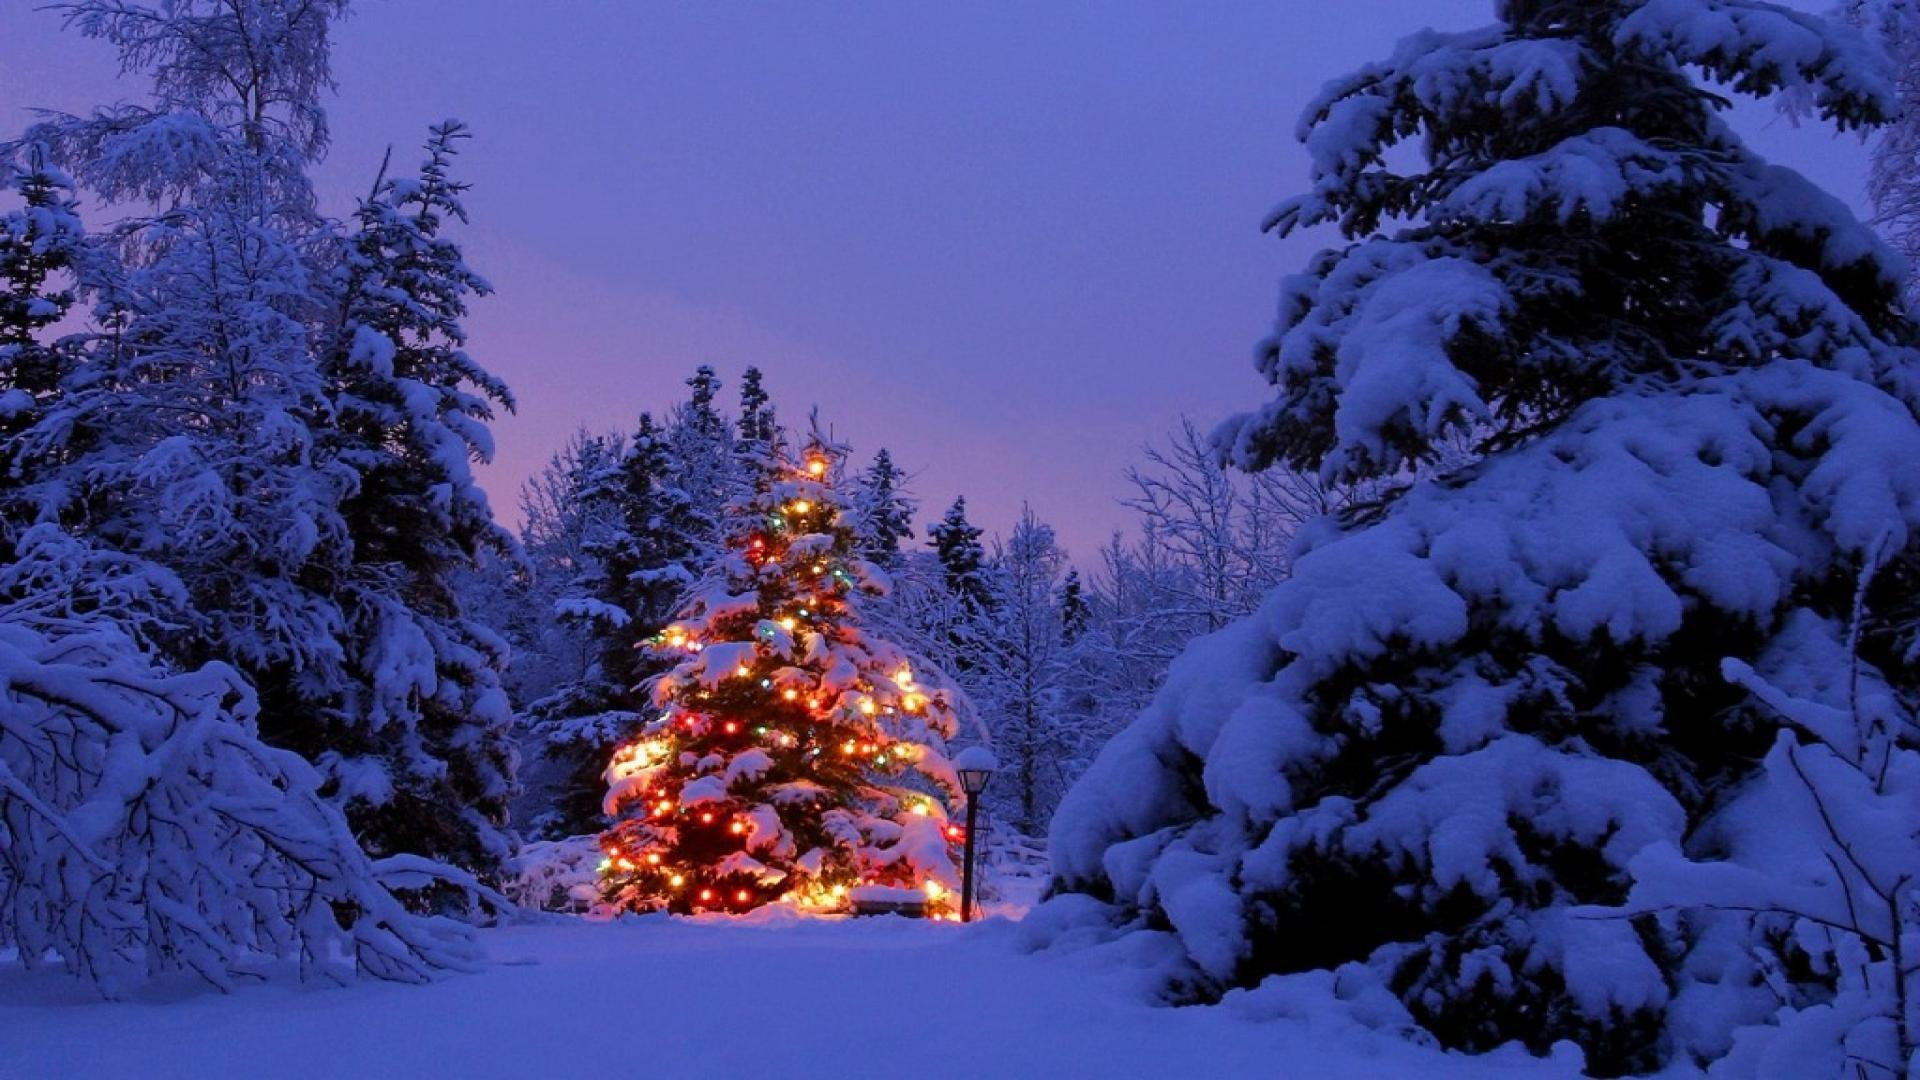 Christmas scenery backgrounds wallpaper cave - Christmas nature wallpaper ...